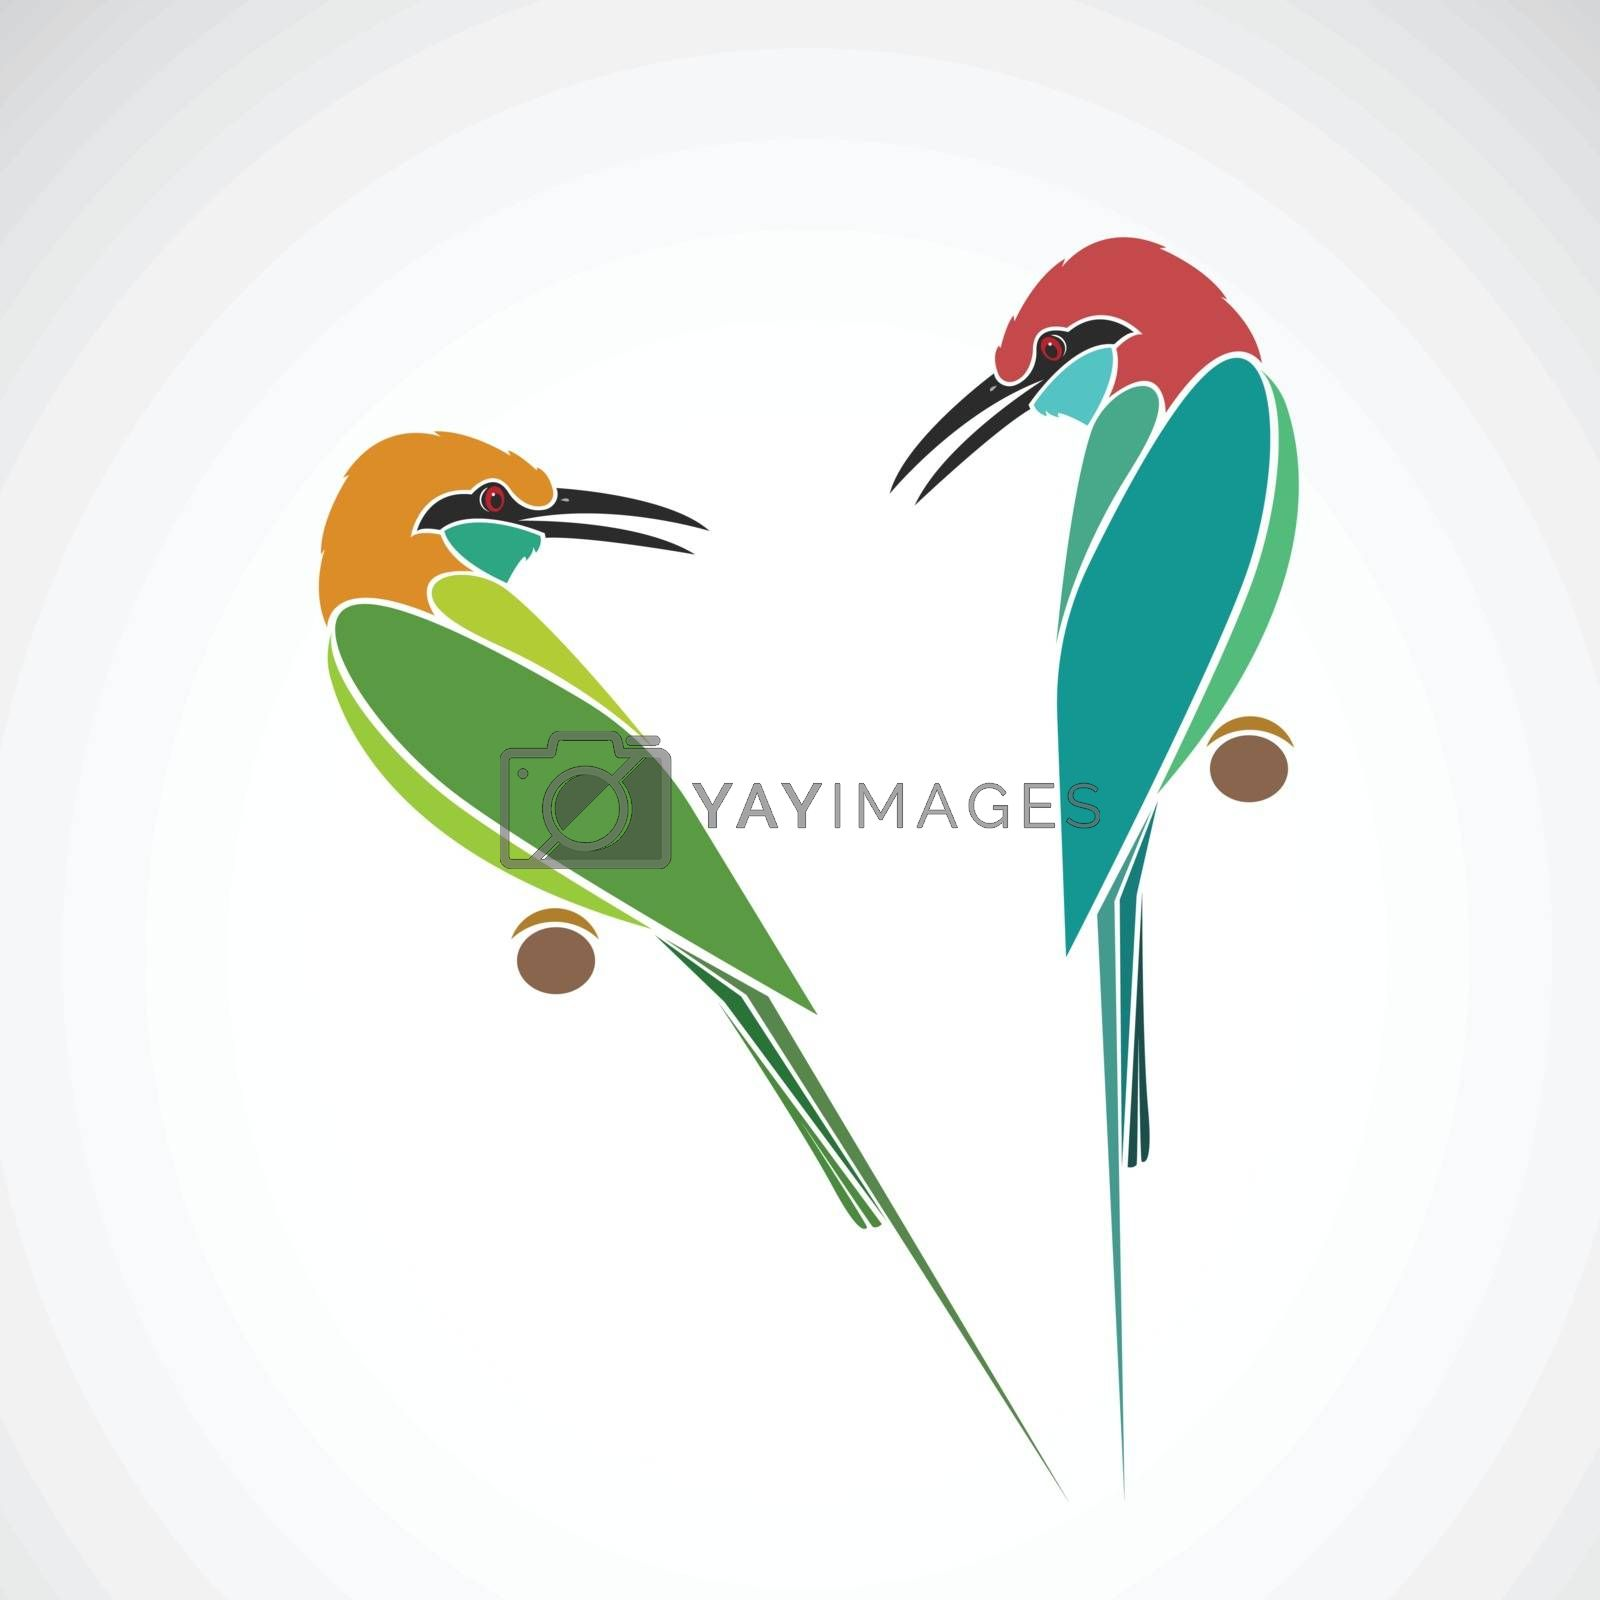 Green Bee eater and Blue throated Bee eater on white background. Birds. Animals. Easy editable layered vector illustration.